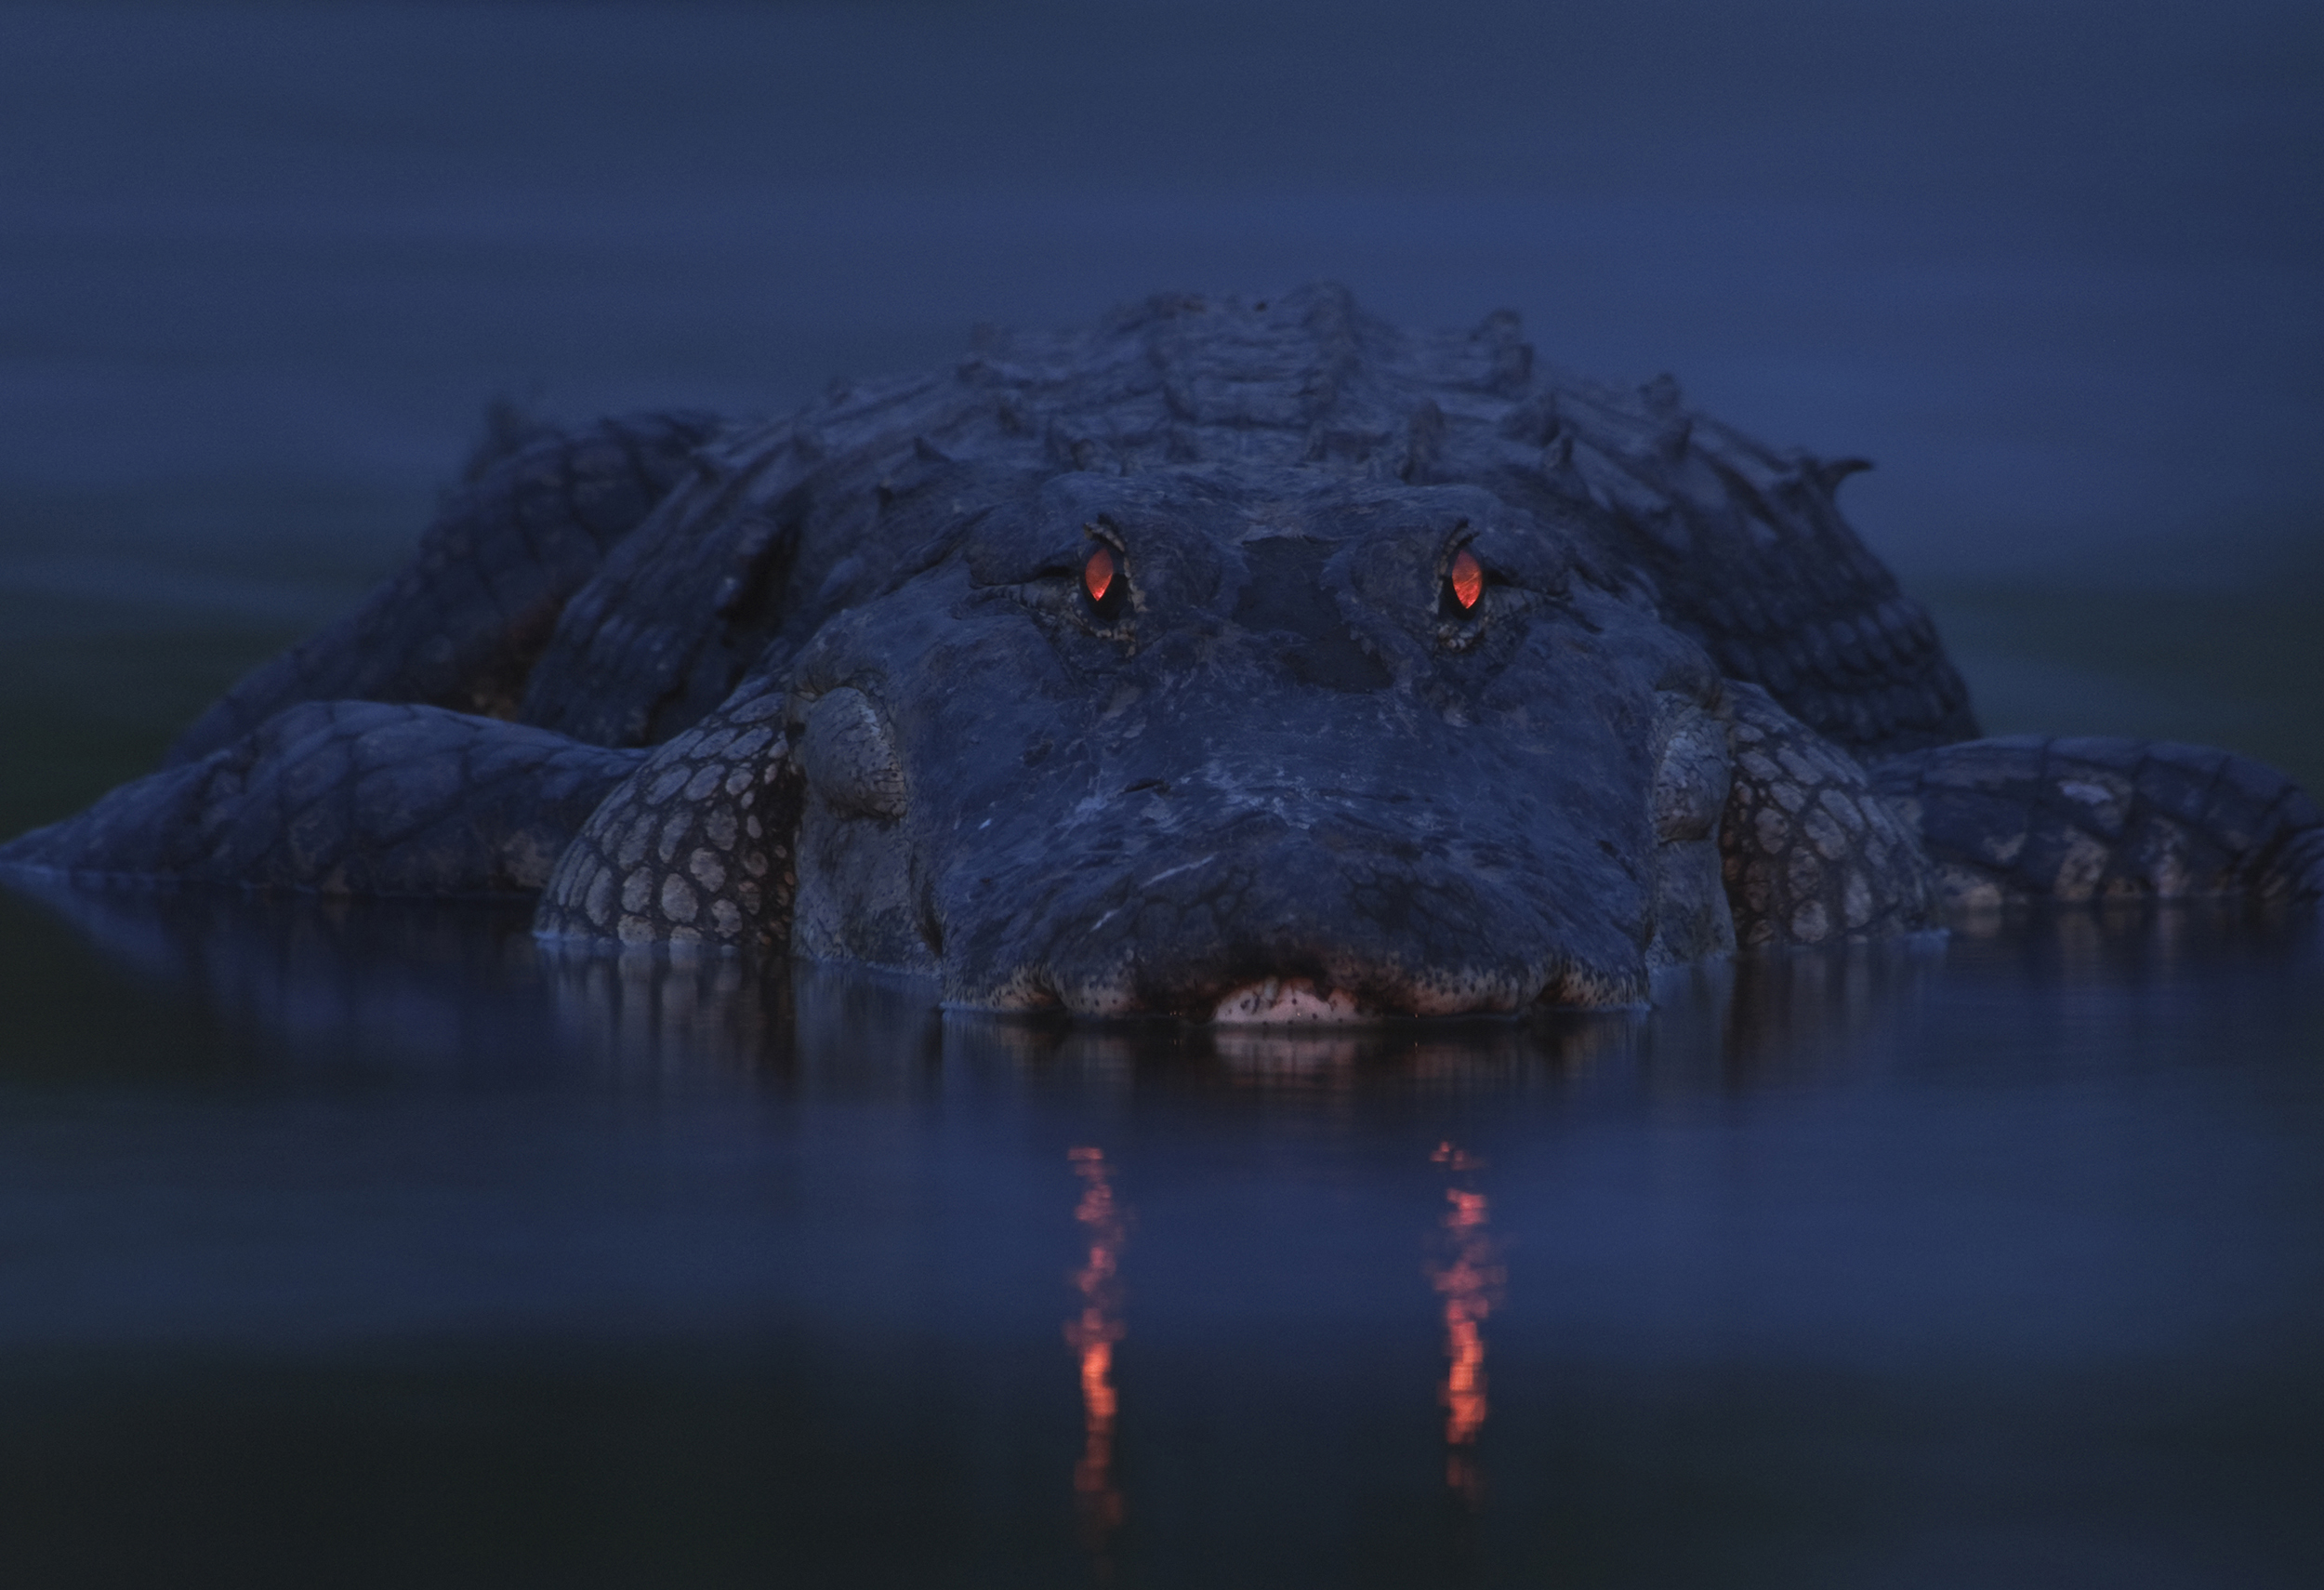 Winner, Animal Portraits -- An alligator is seen at Myakka River State Park in Sarasota, Fla. Like cats, alligators have a tapetum lucidum at the back of each eye -- a structure that reflects light back into the photoreceptor cells to make the most of low light. When light shines into alligators' eyes, the pupils appear to glow red.